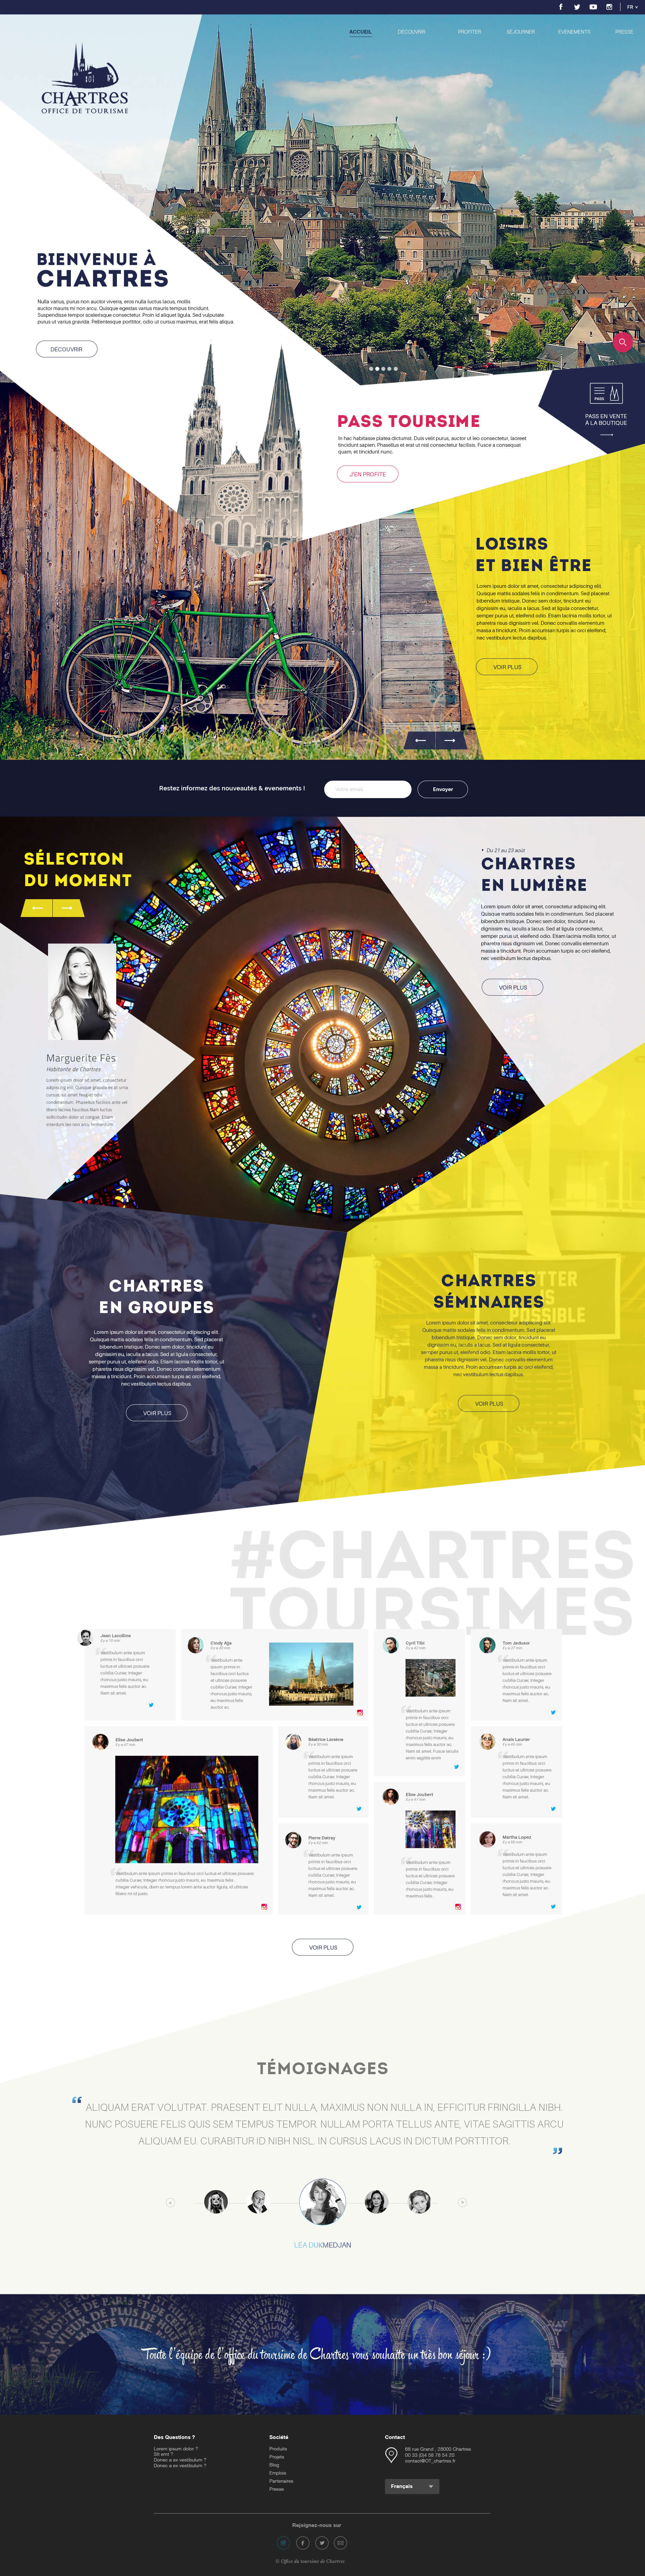 Page d'accueil AO Chartres